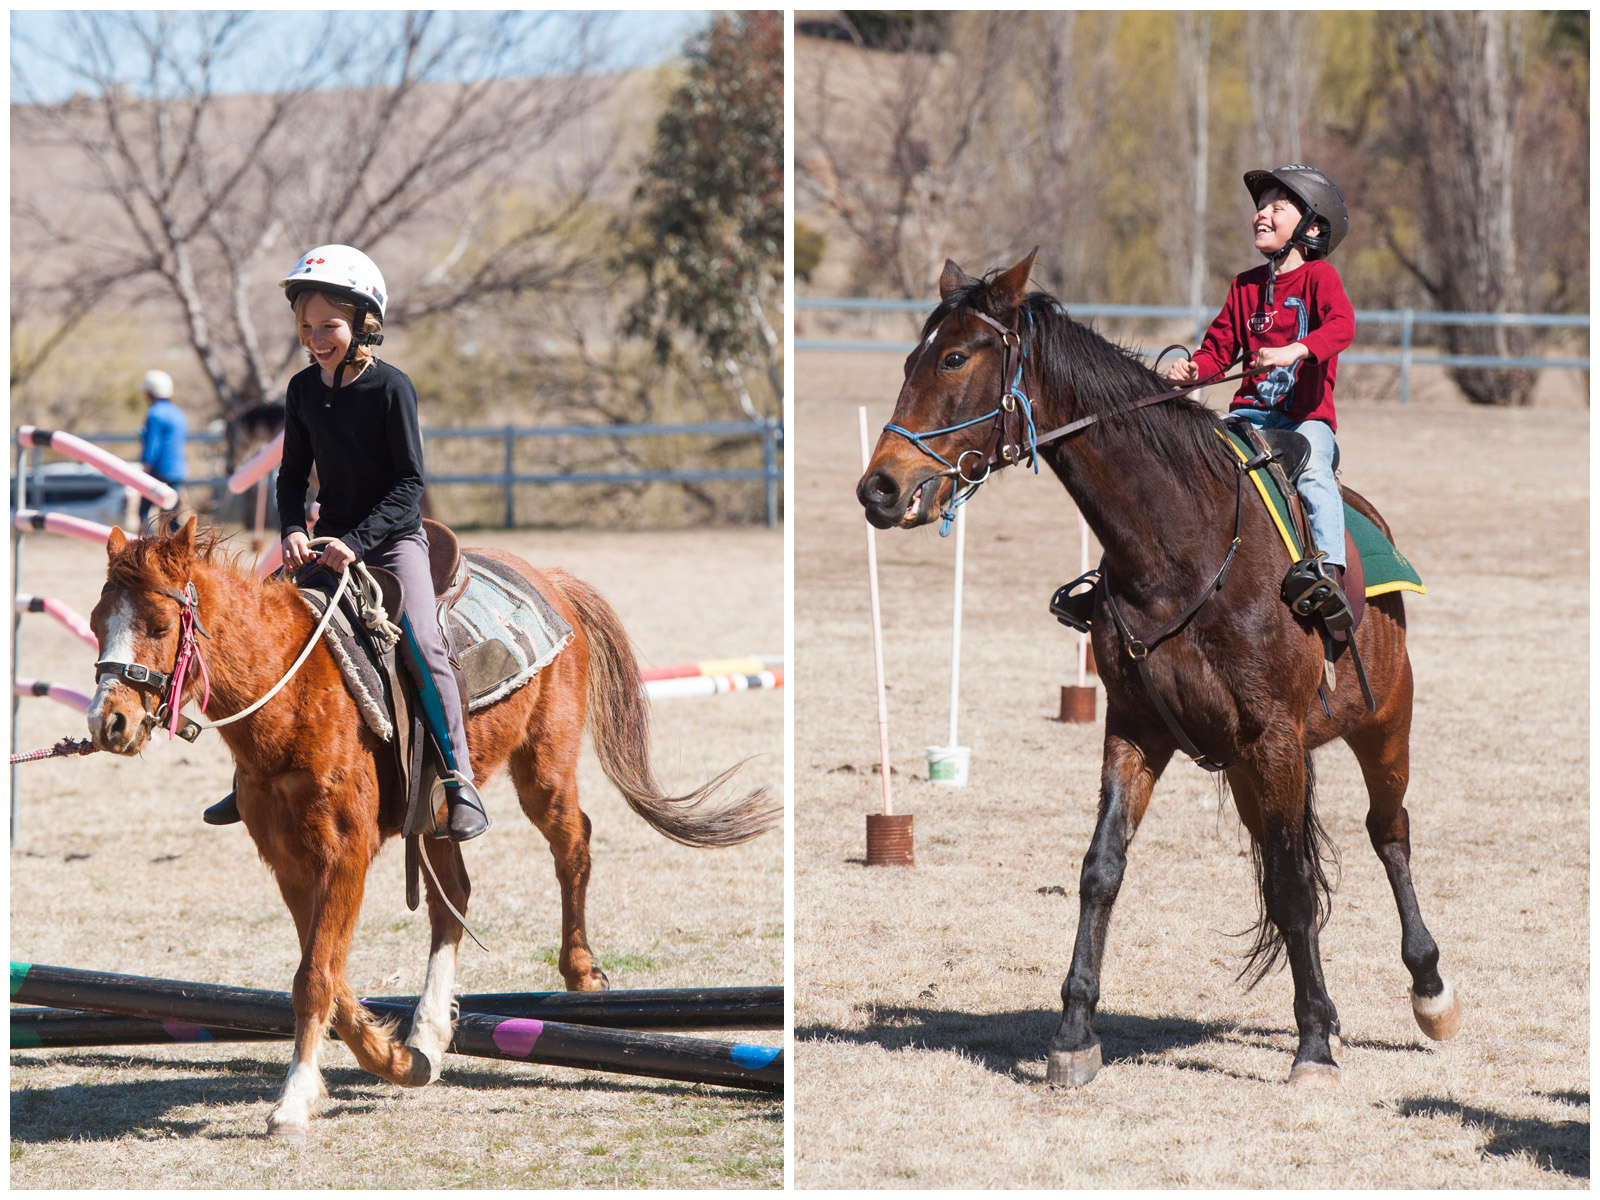 Emily on Elmo, and Jack on Charlie - at the Snowy River Pony Club